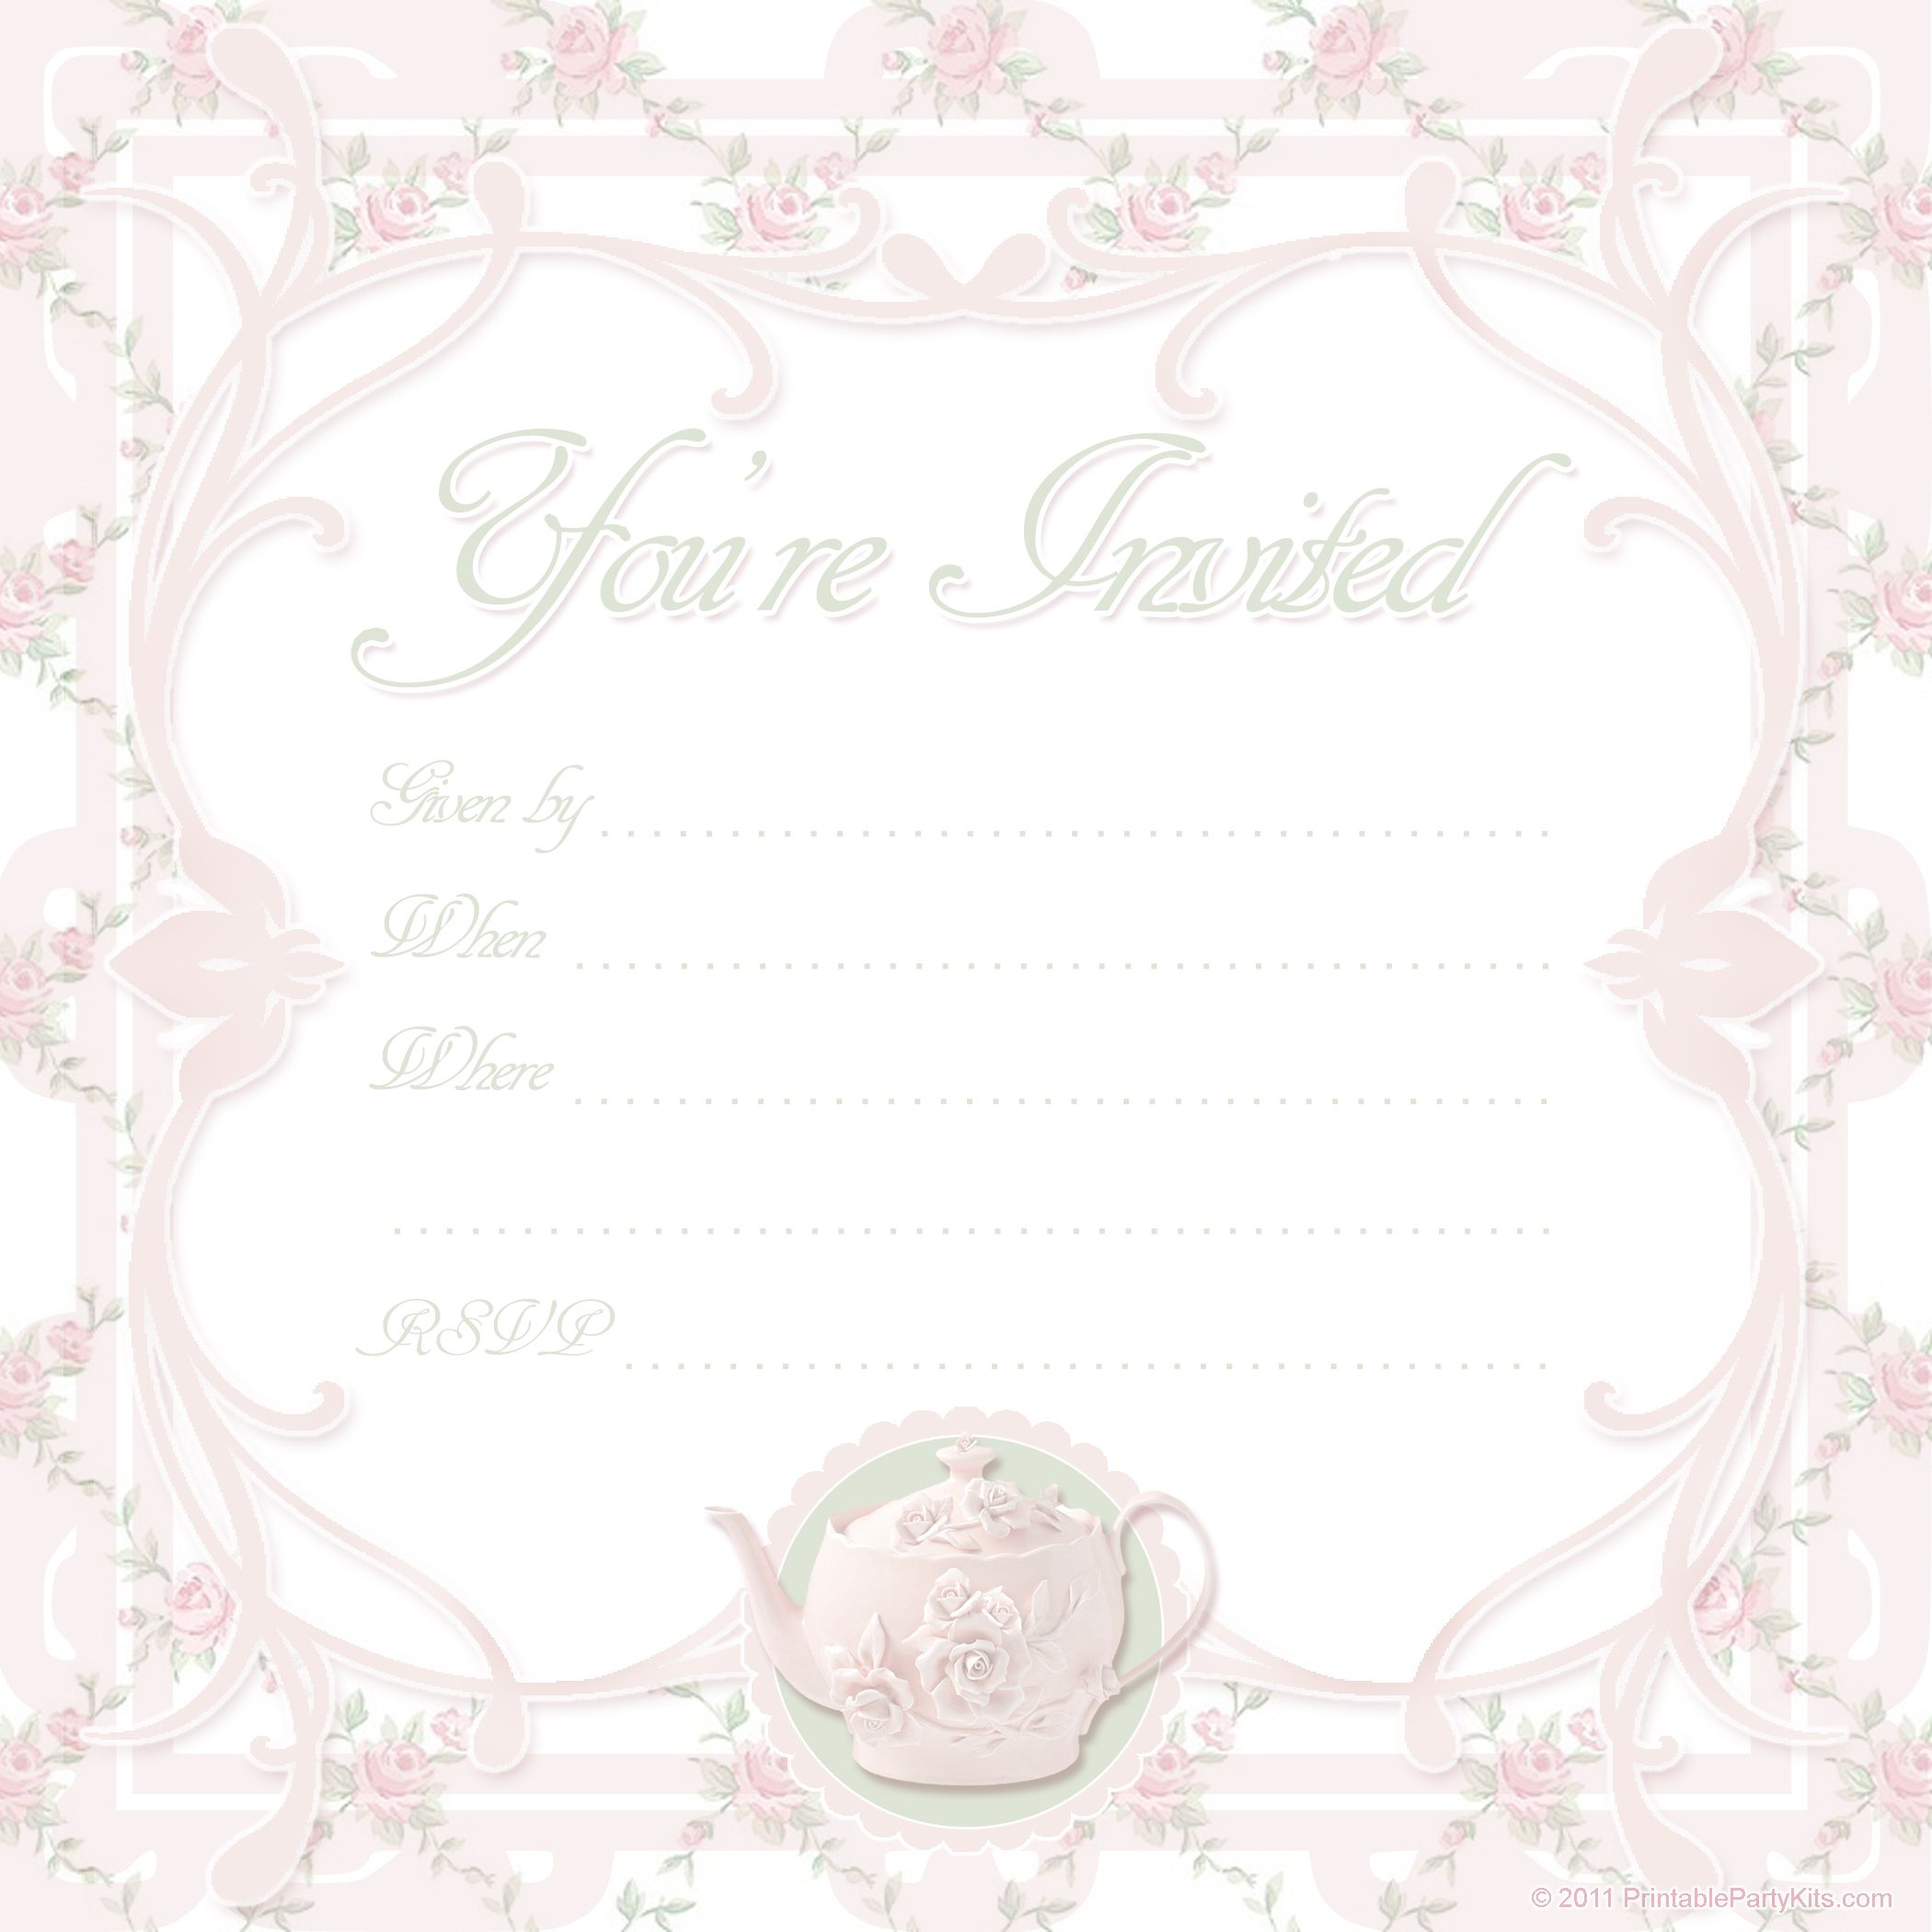 vintage tea party invitations printable tea party invite vintage tea party invitations printable tea party invite template printable party kits